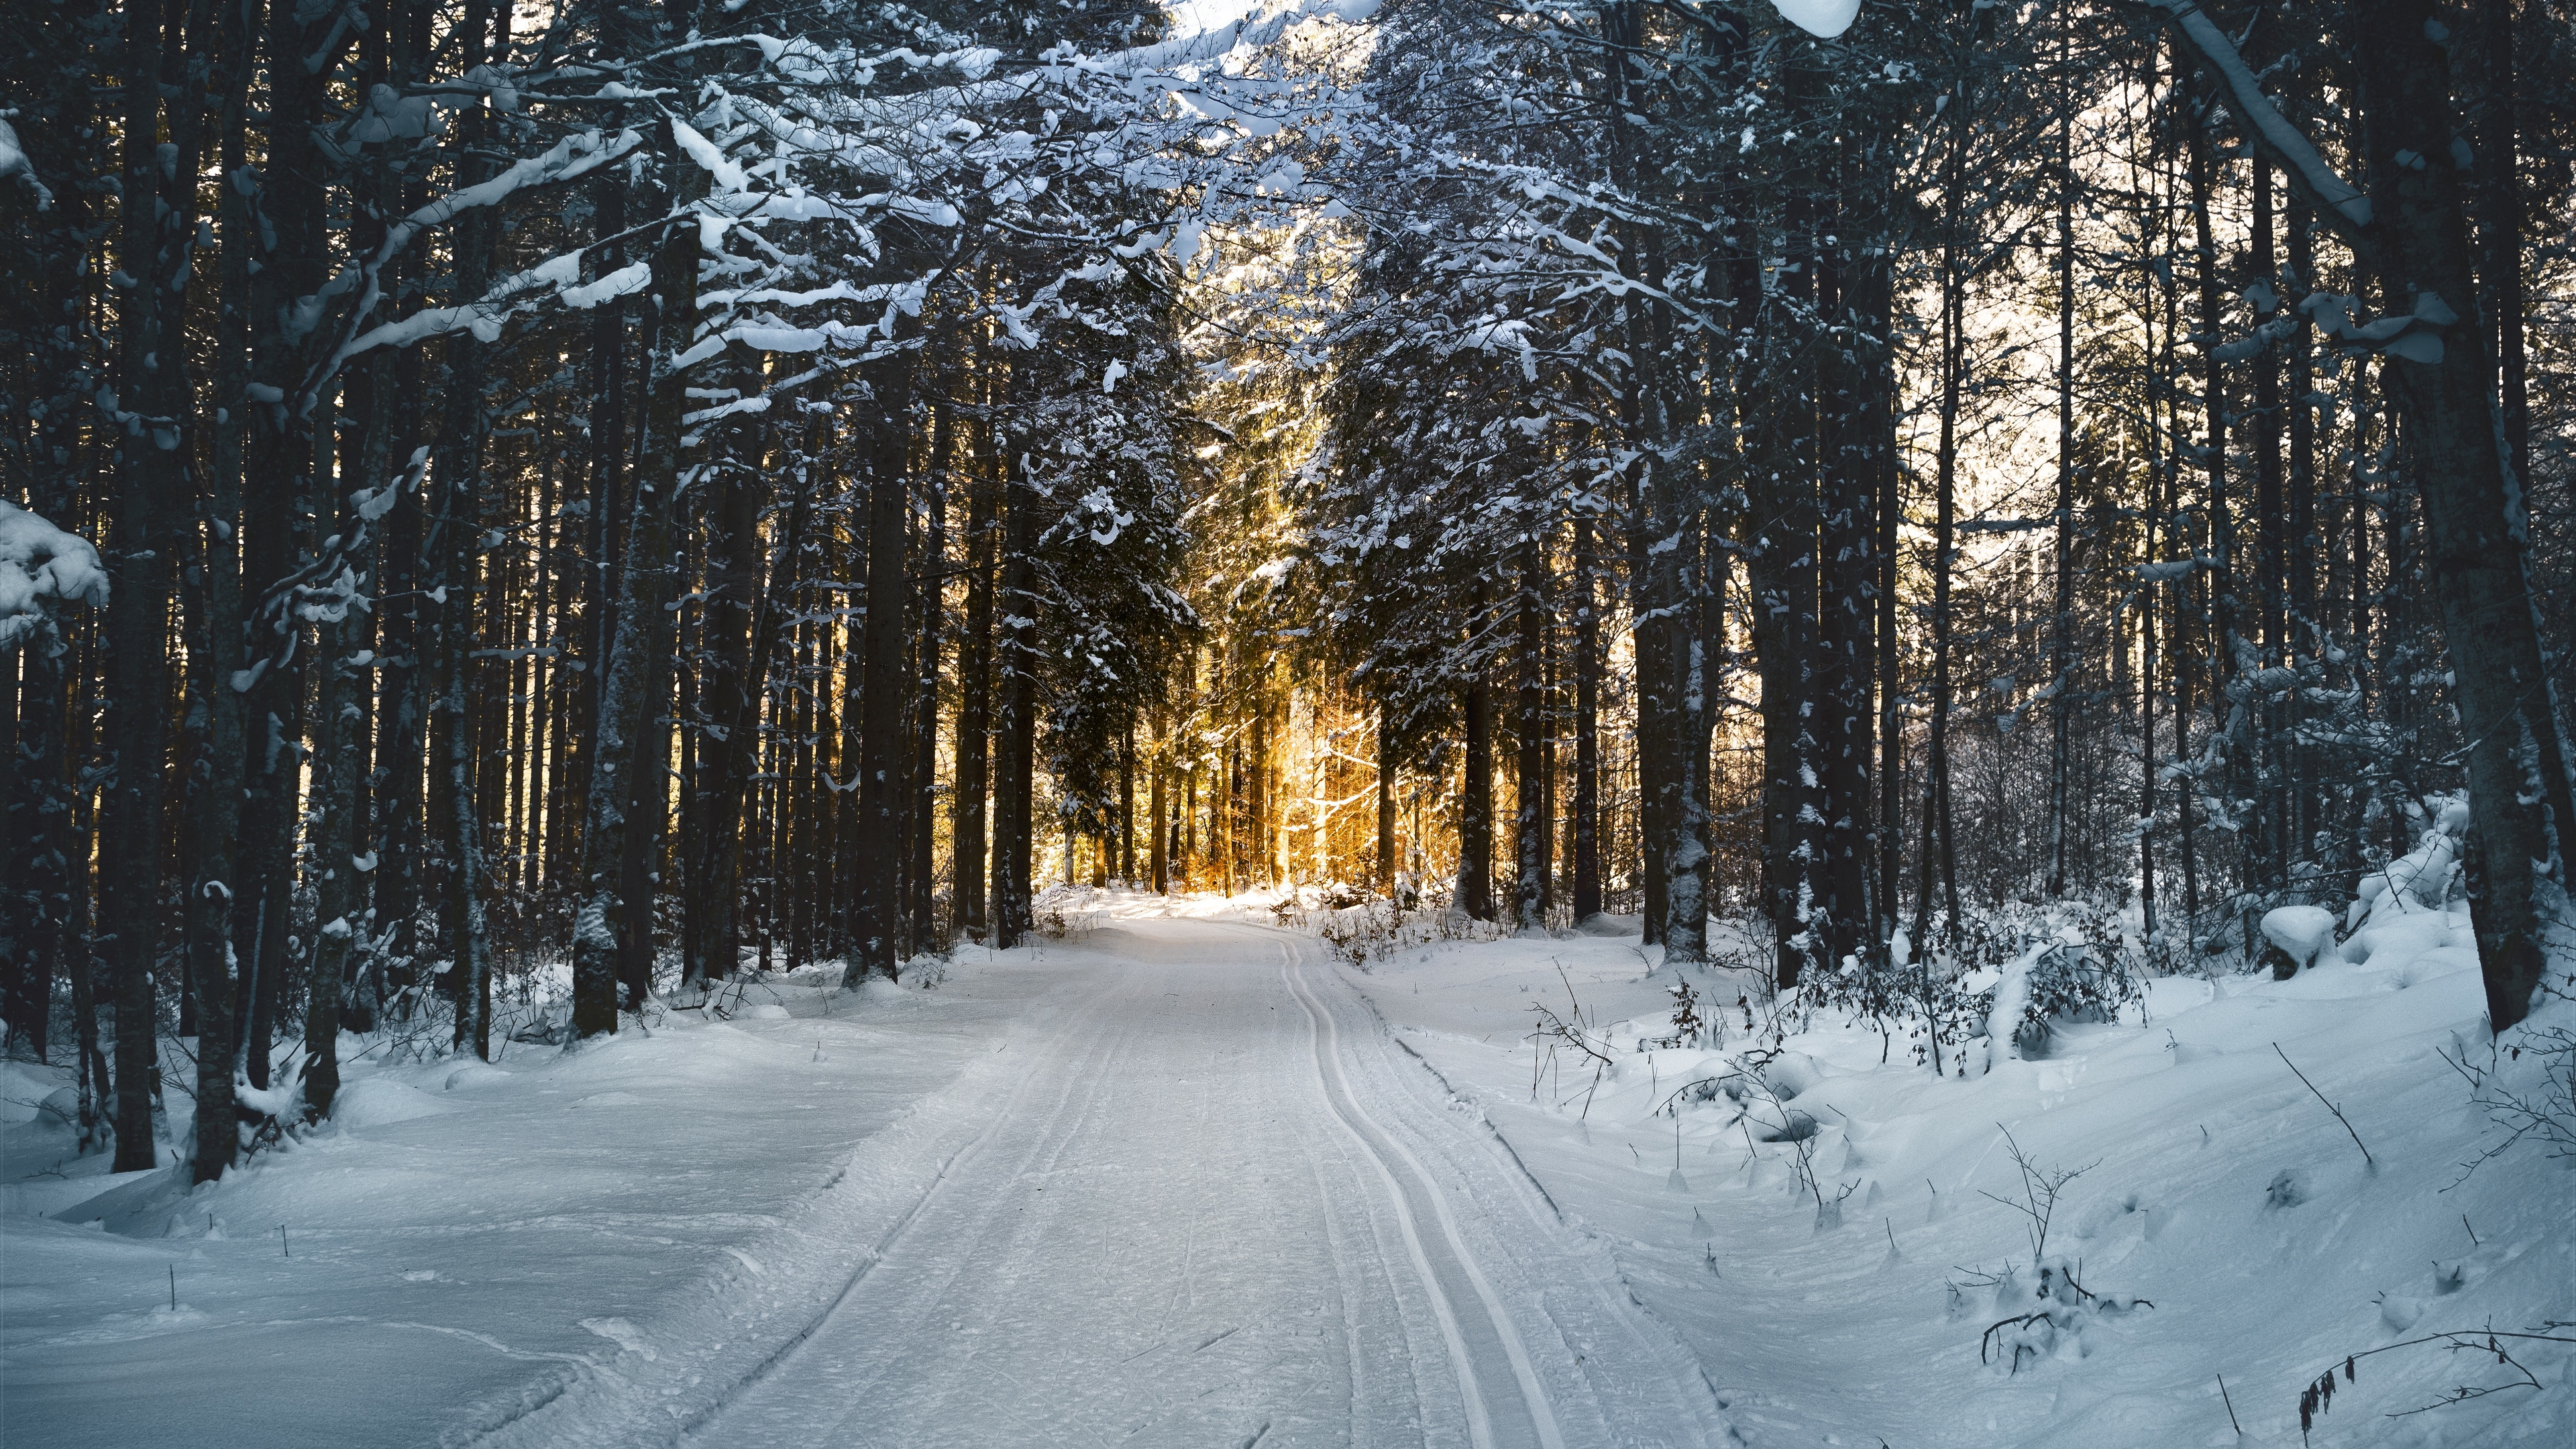 winter trees forest road 4k 1541114488 - winter, trees, forest, road 4k - Winter, Trees, Forest